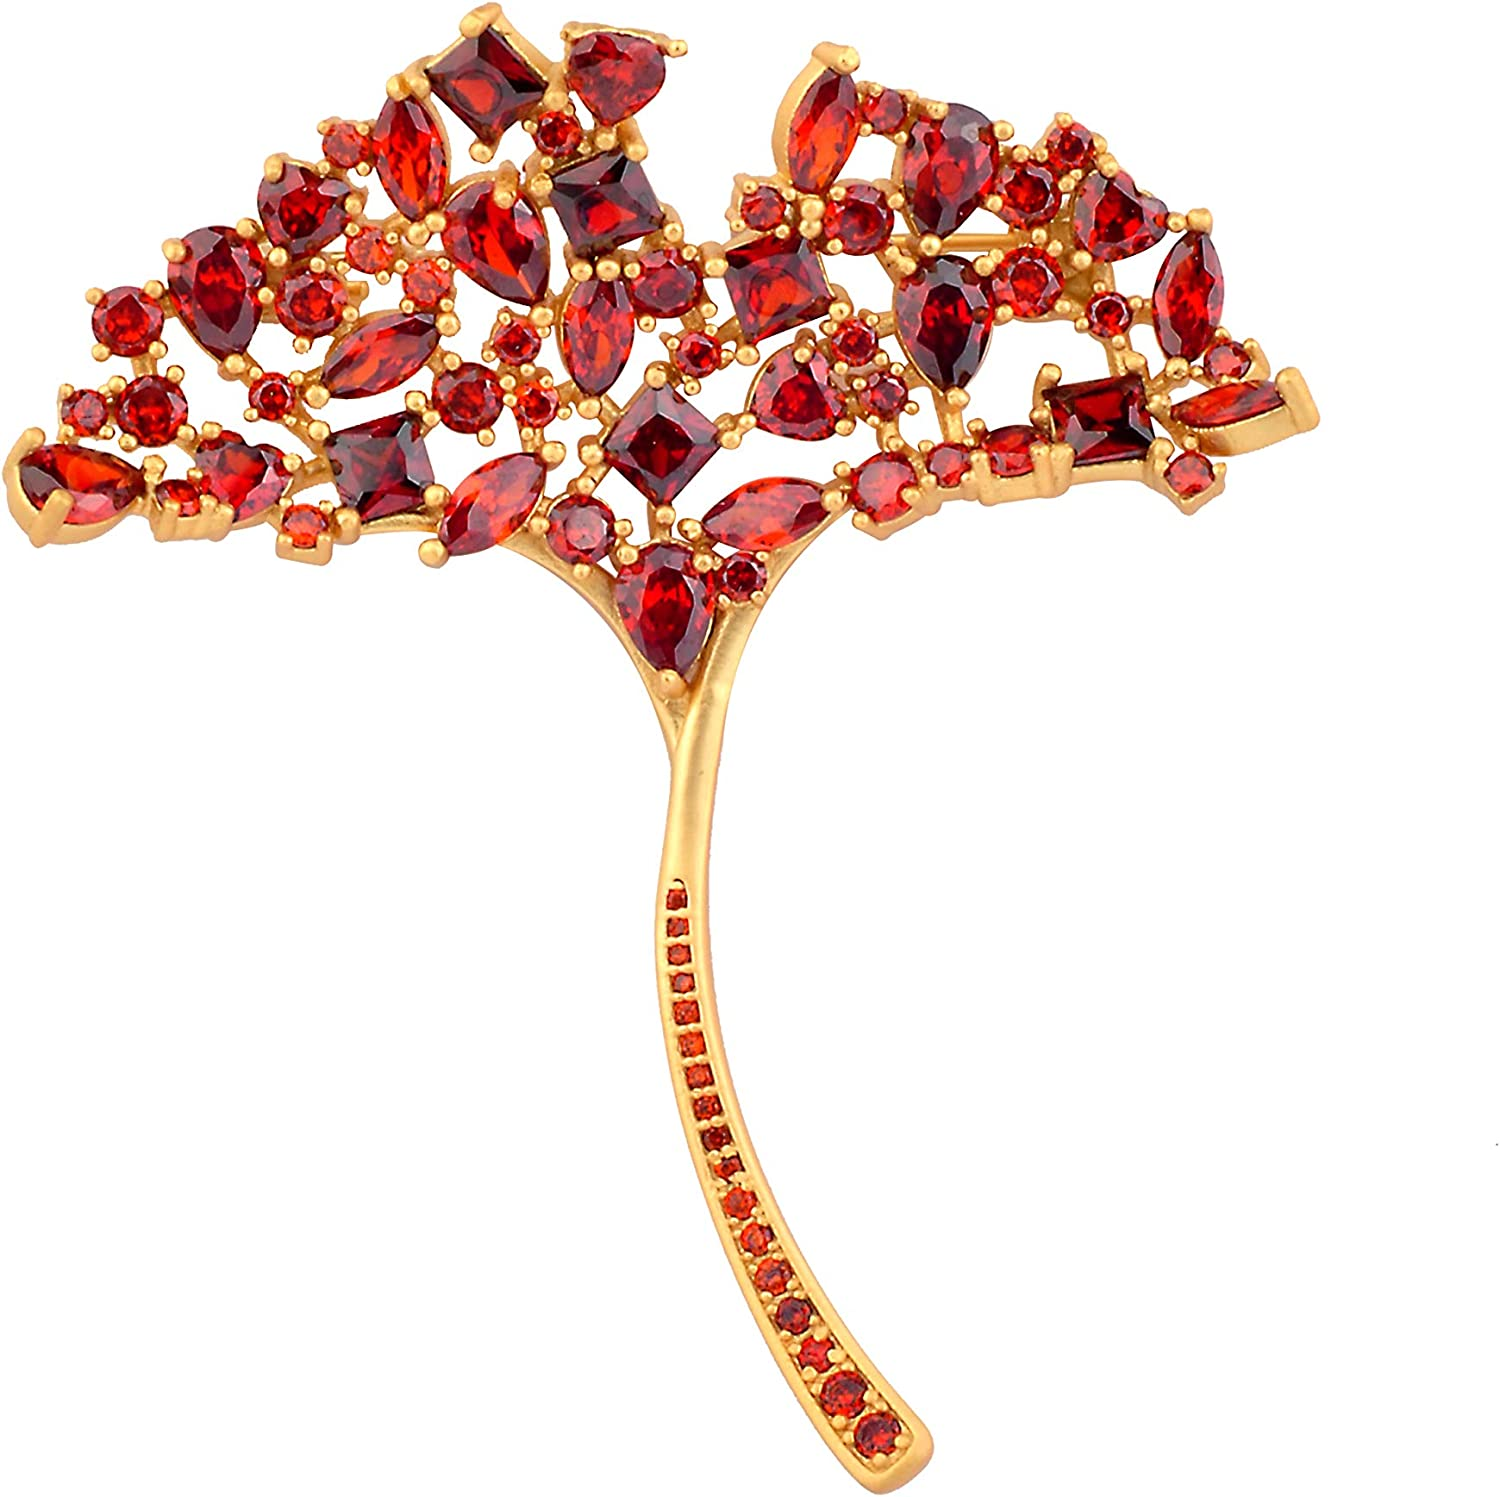 Philocaly Crystal Ginkgo Leaf Brooch Pin for Women Girls